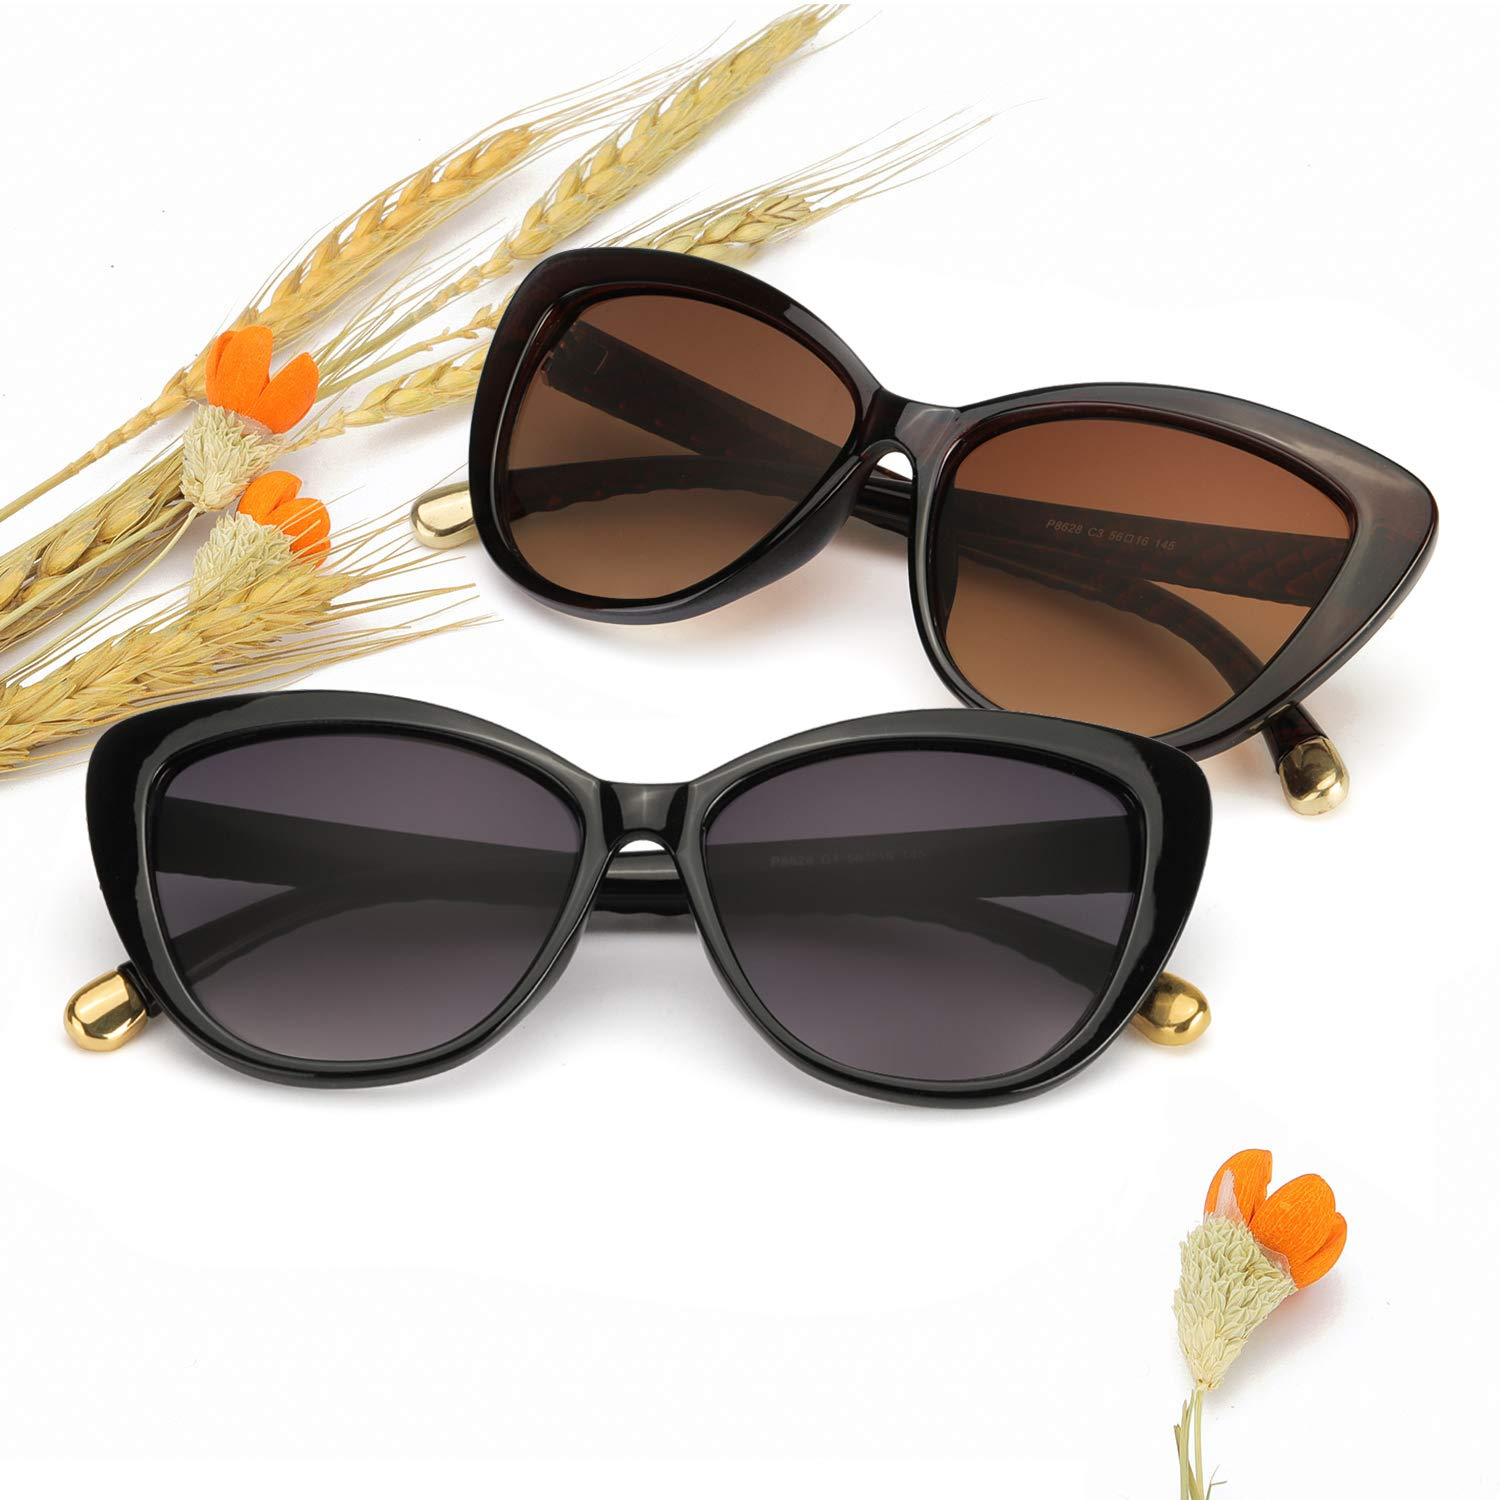 PdnIds Cateye Sunglasses for Women Polarized-Fashion Cat Eyes Frame with 100/% UV 400 Protection